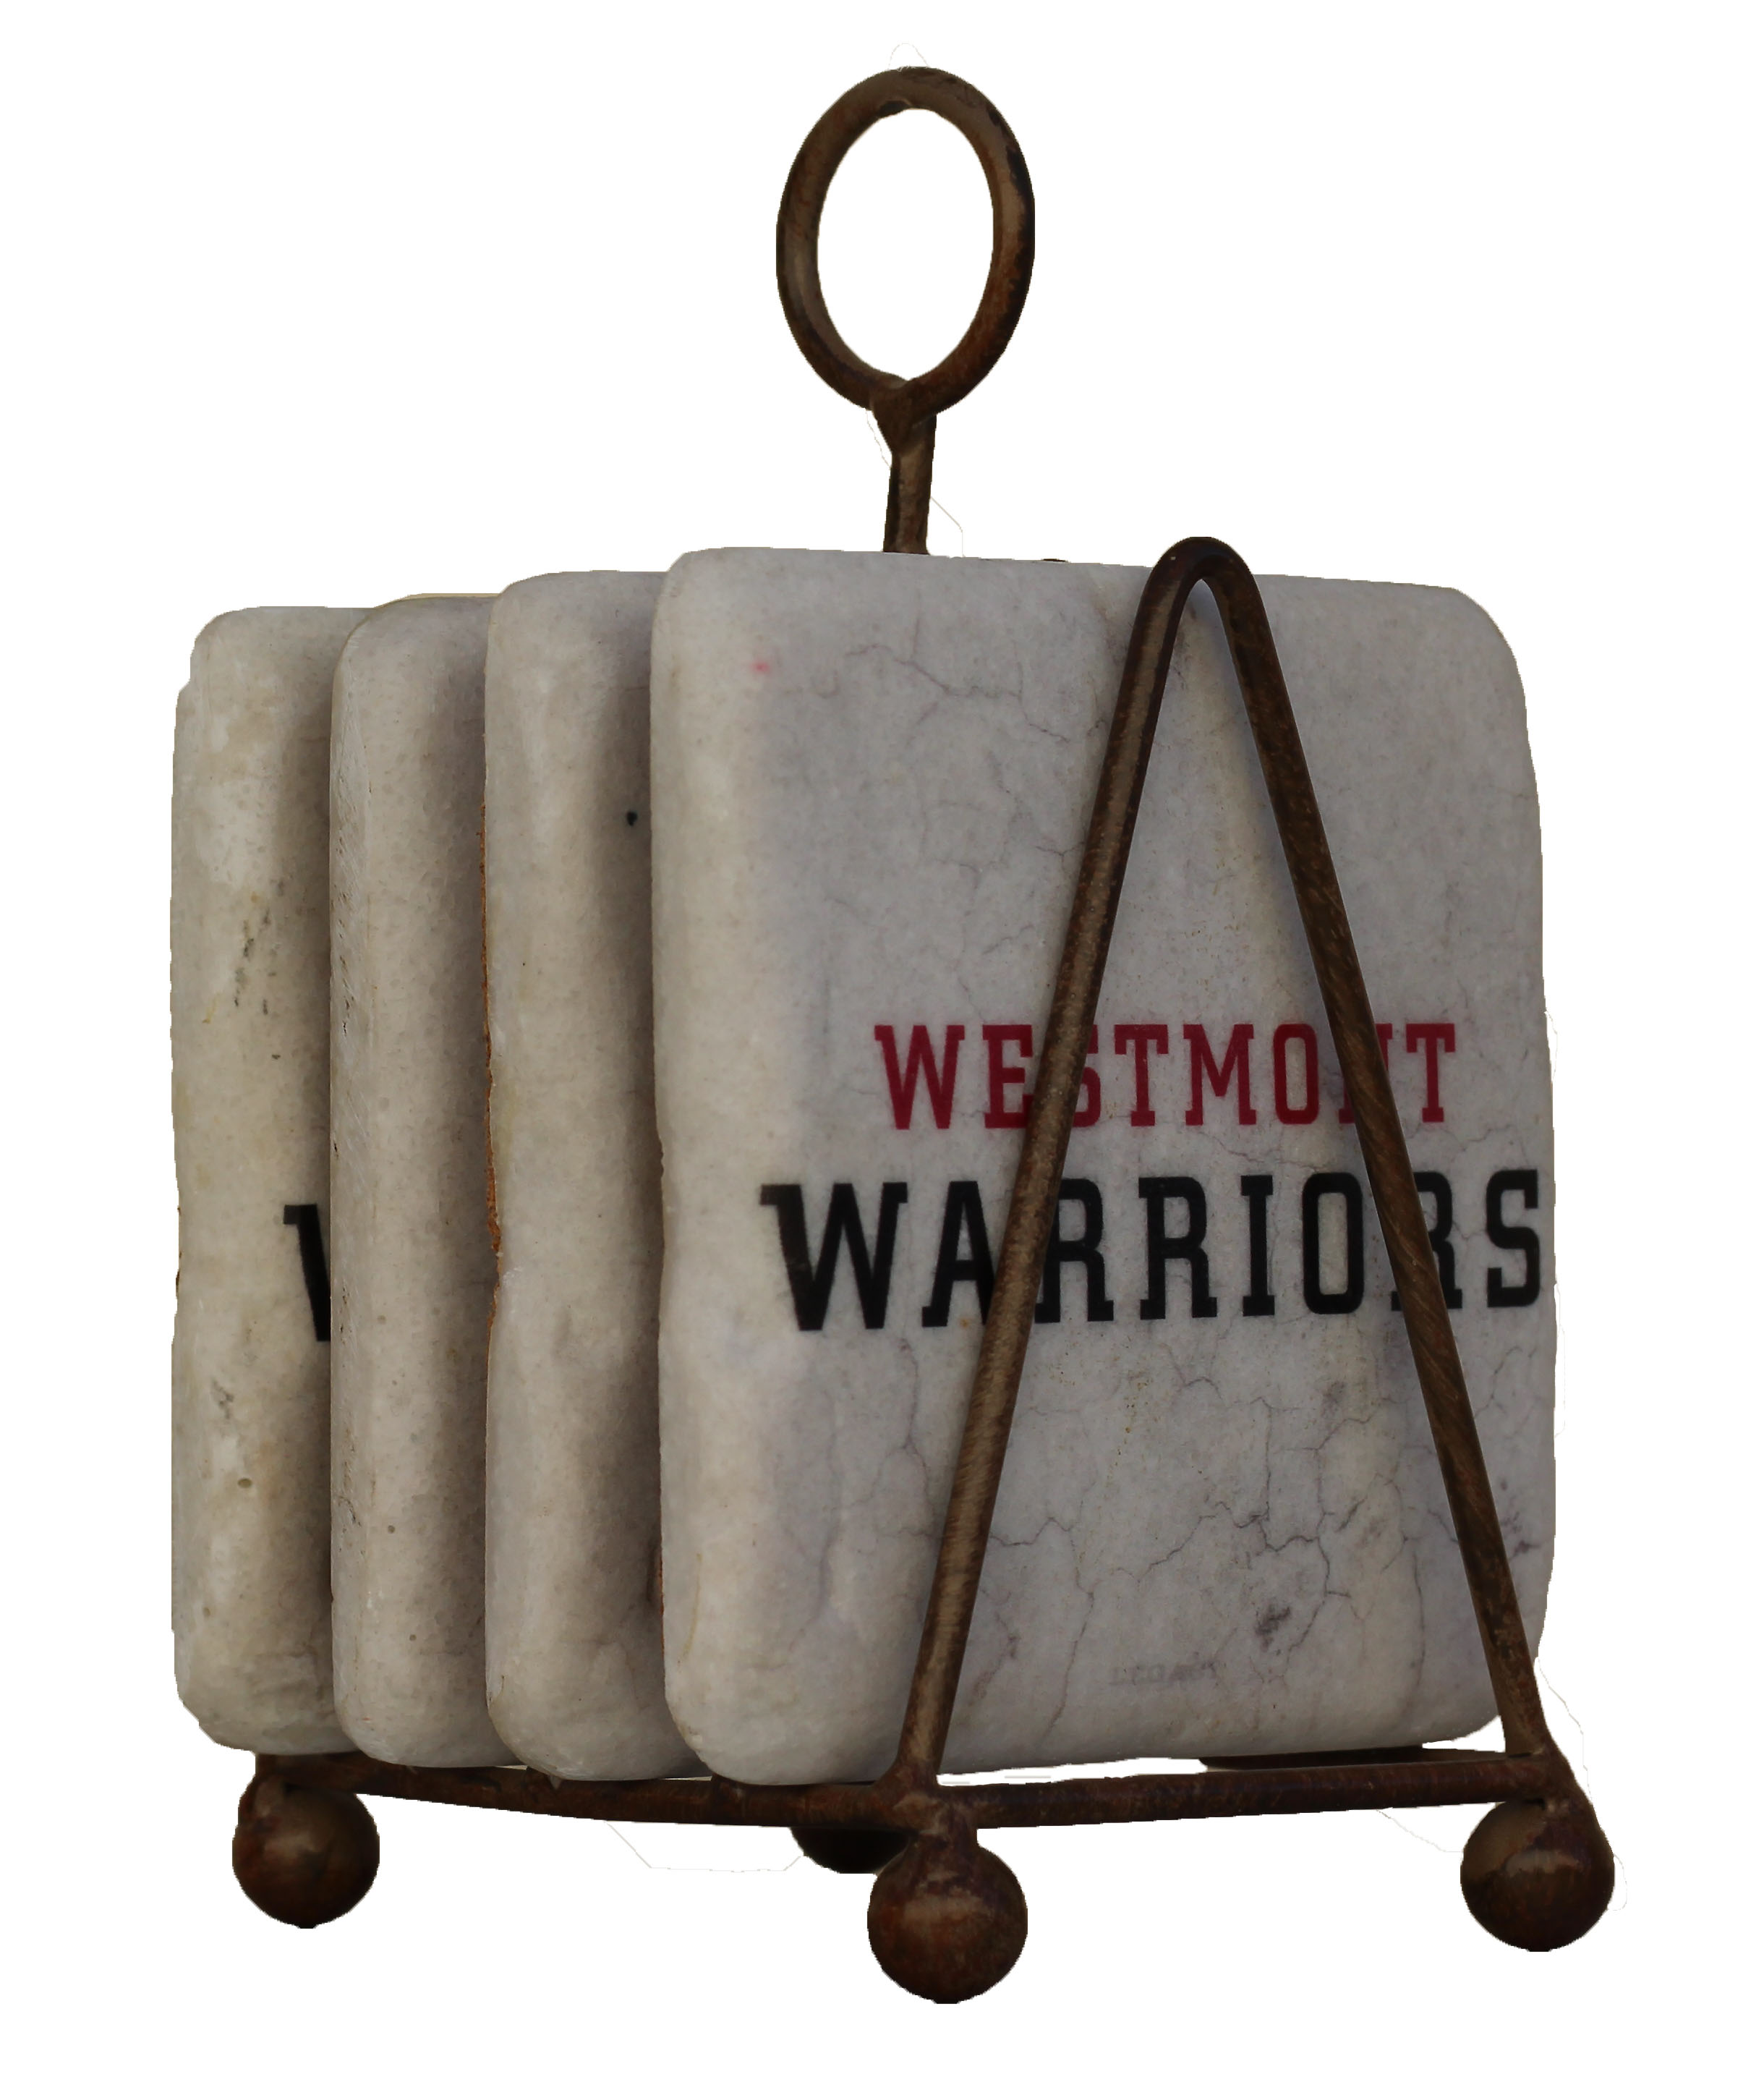 Image for the Legacy Westmont Warrior Coaster Set product